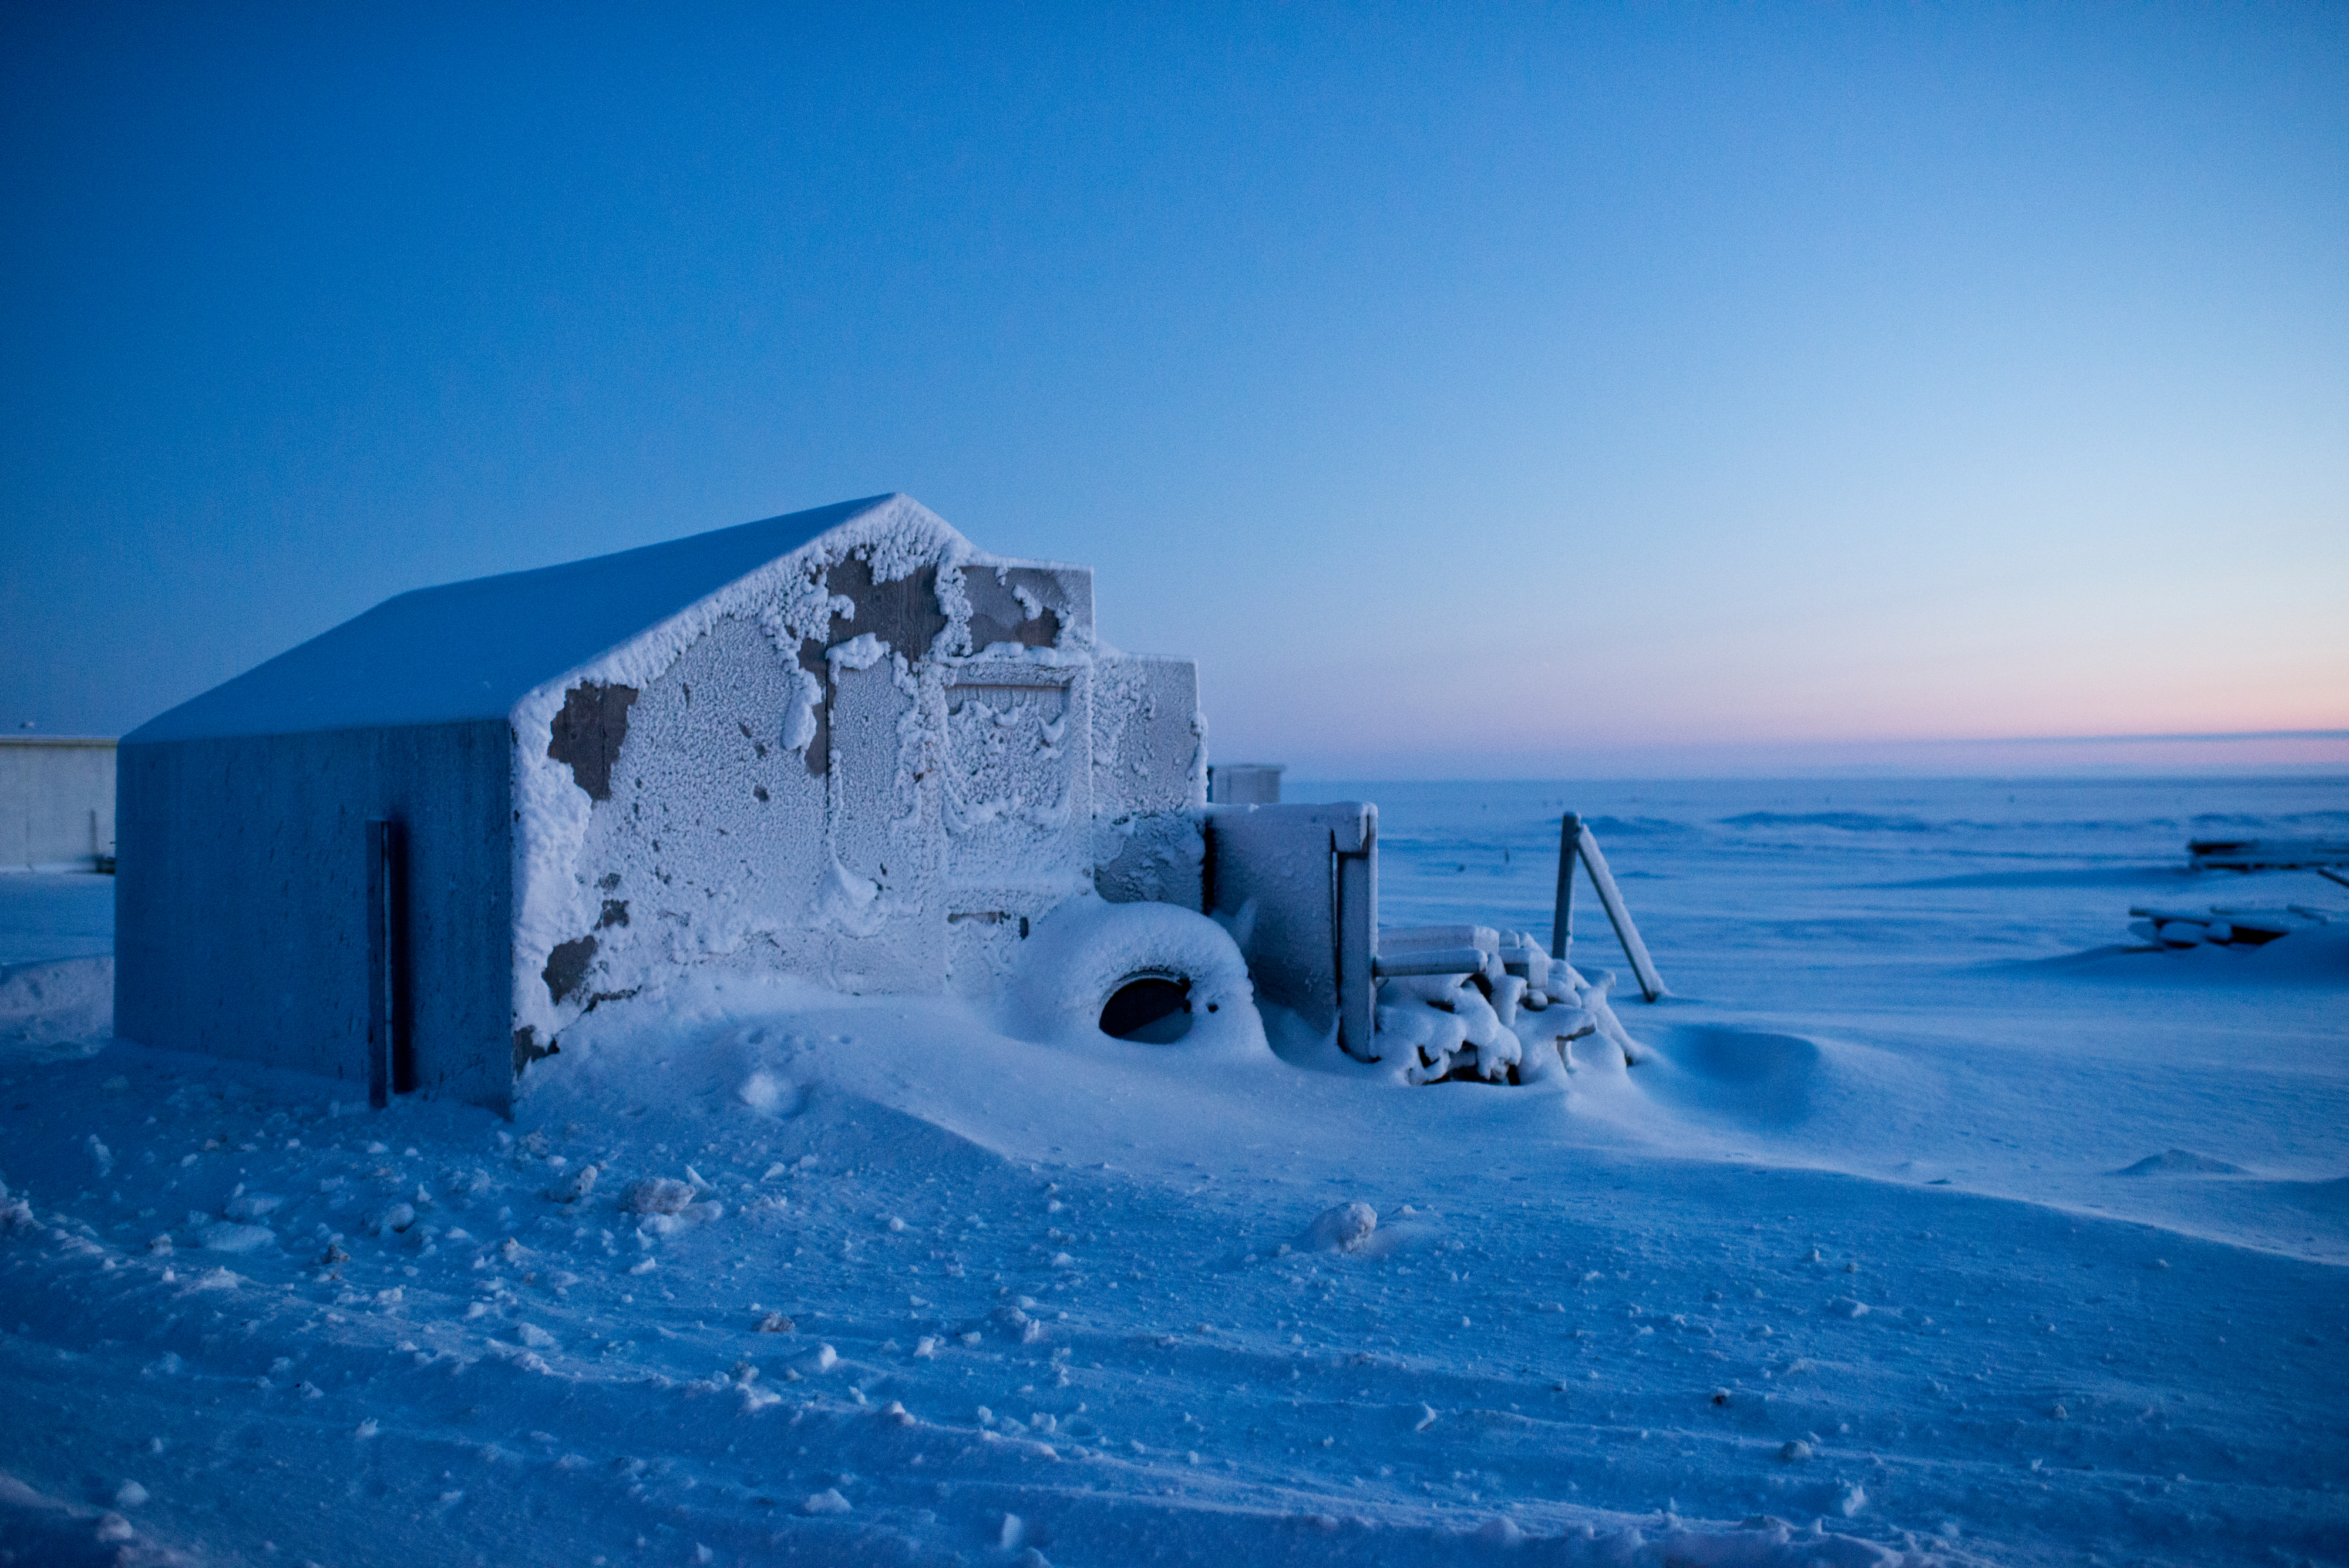 A cabin at a summer camps outside of Utqiaġvik is drifted with snow and coated in frost on Tuesday, December 13, 2016. Voters approved changing the name of the city of Barrow to Utqiagvik in October, a change which went into effect on December 1. In Alaska's northernmost city, however, residents remain divided about whether they name should've changed at all, whether the process was hurried, and whether the Utqiagvik is even the proper Inupiaq place name. (Marc Lester / Alaska Dispatch News)